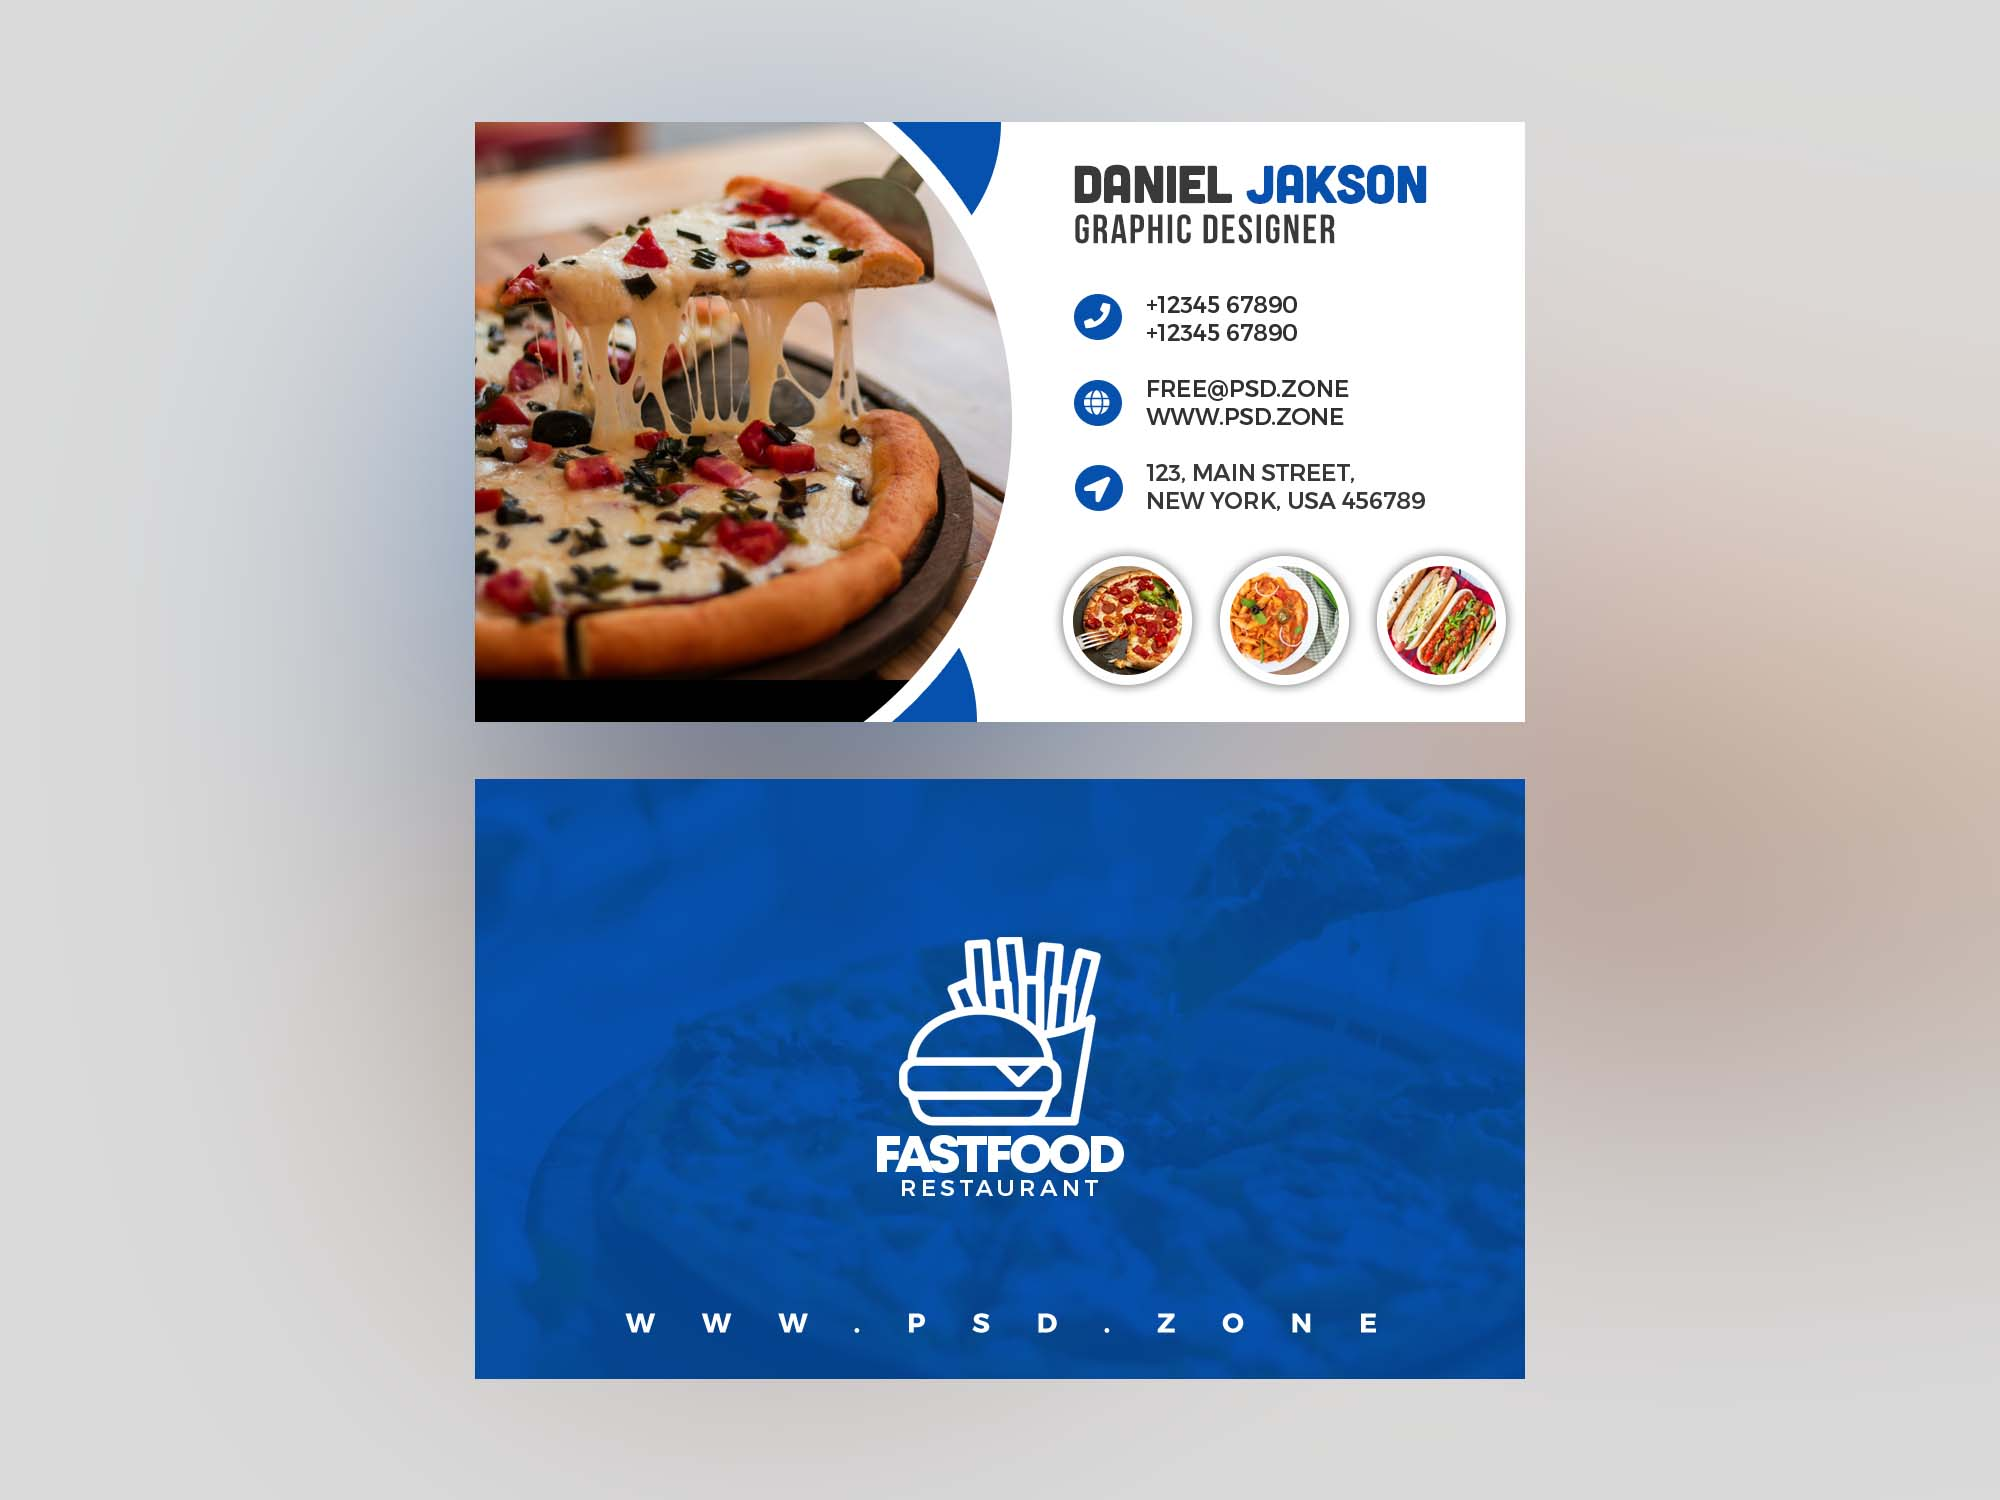 Restaurant Business Card Template from unblast.com